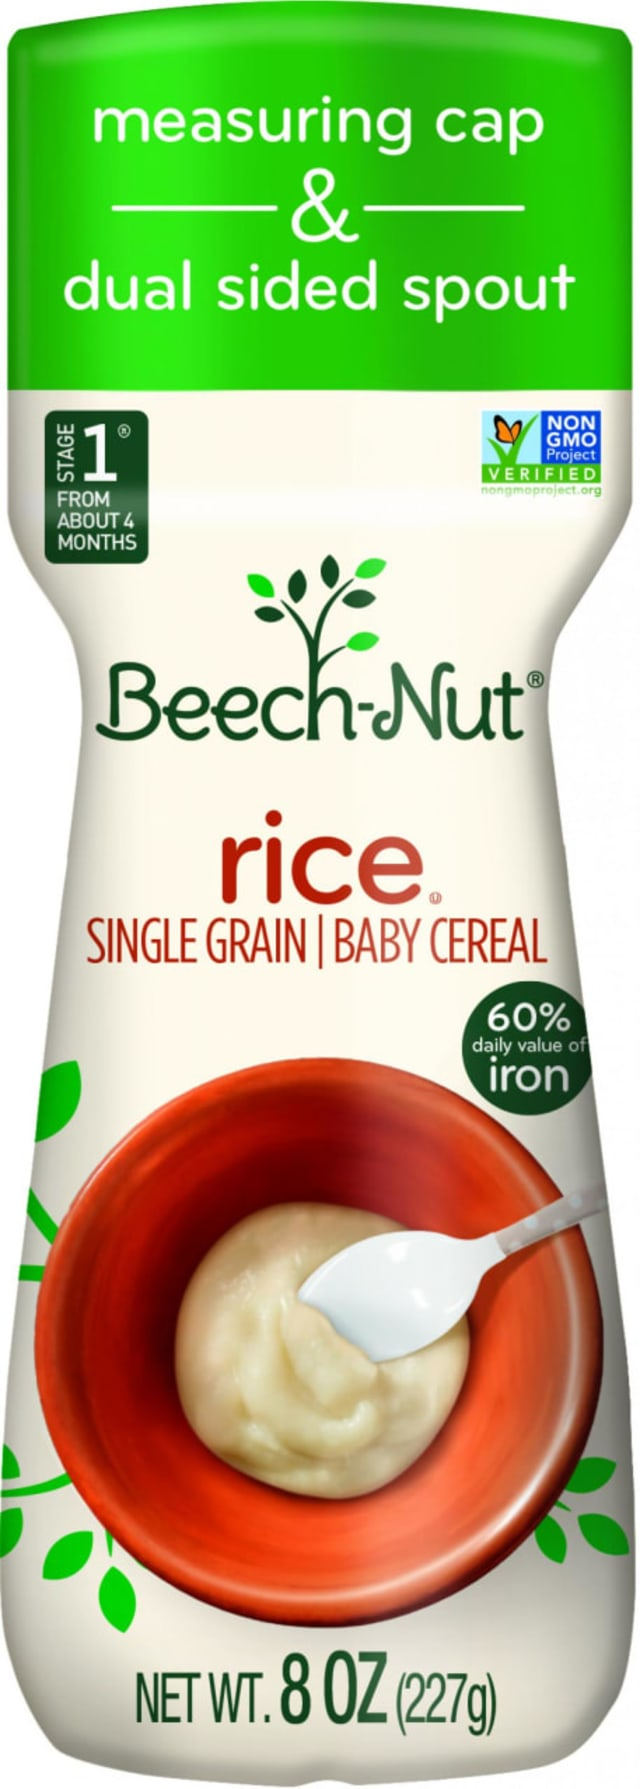 Beech-Nut is getting out of the rice cereal game after finding traces of arsenic in the product.